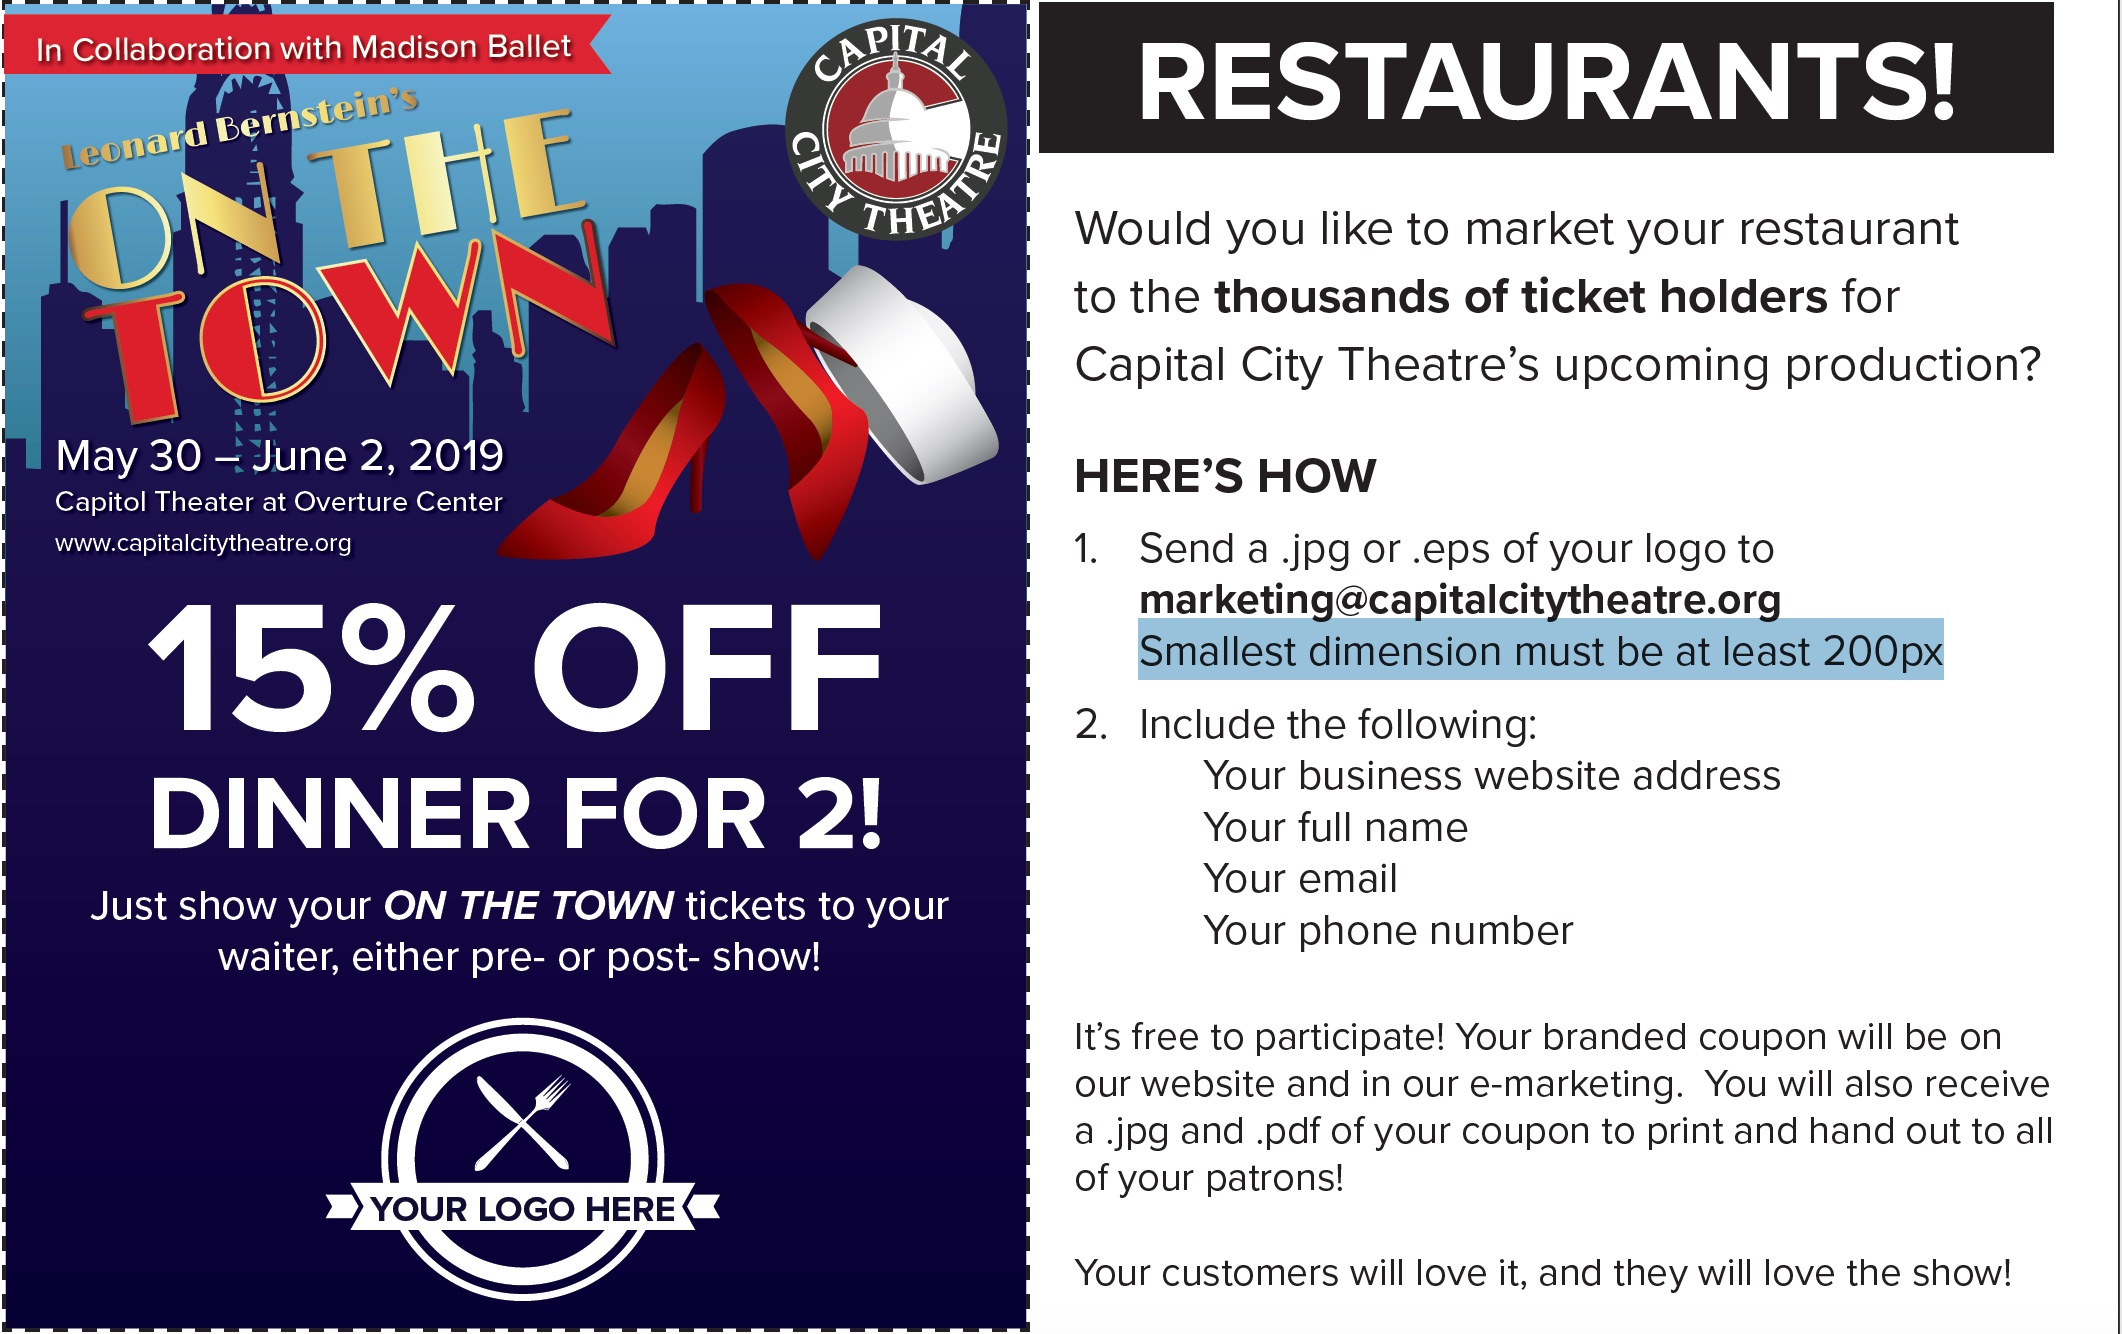 April2019_OTT_RestaurantPartnership_Collateral.jpg